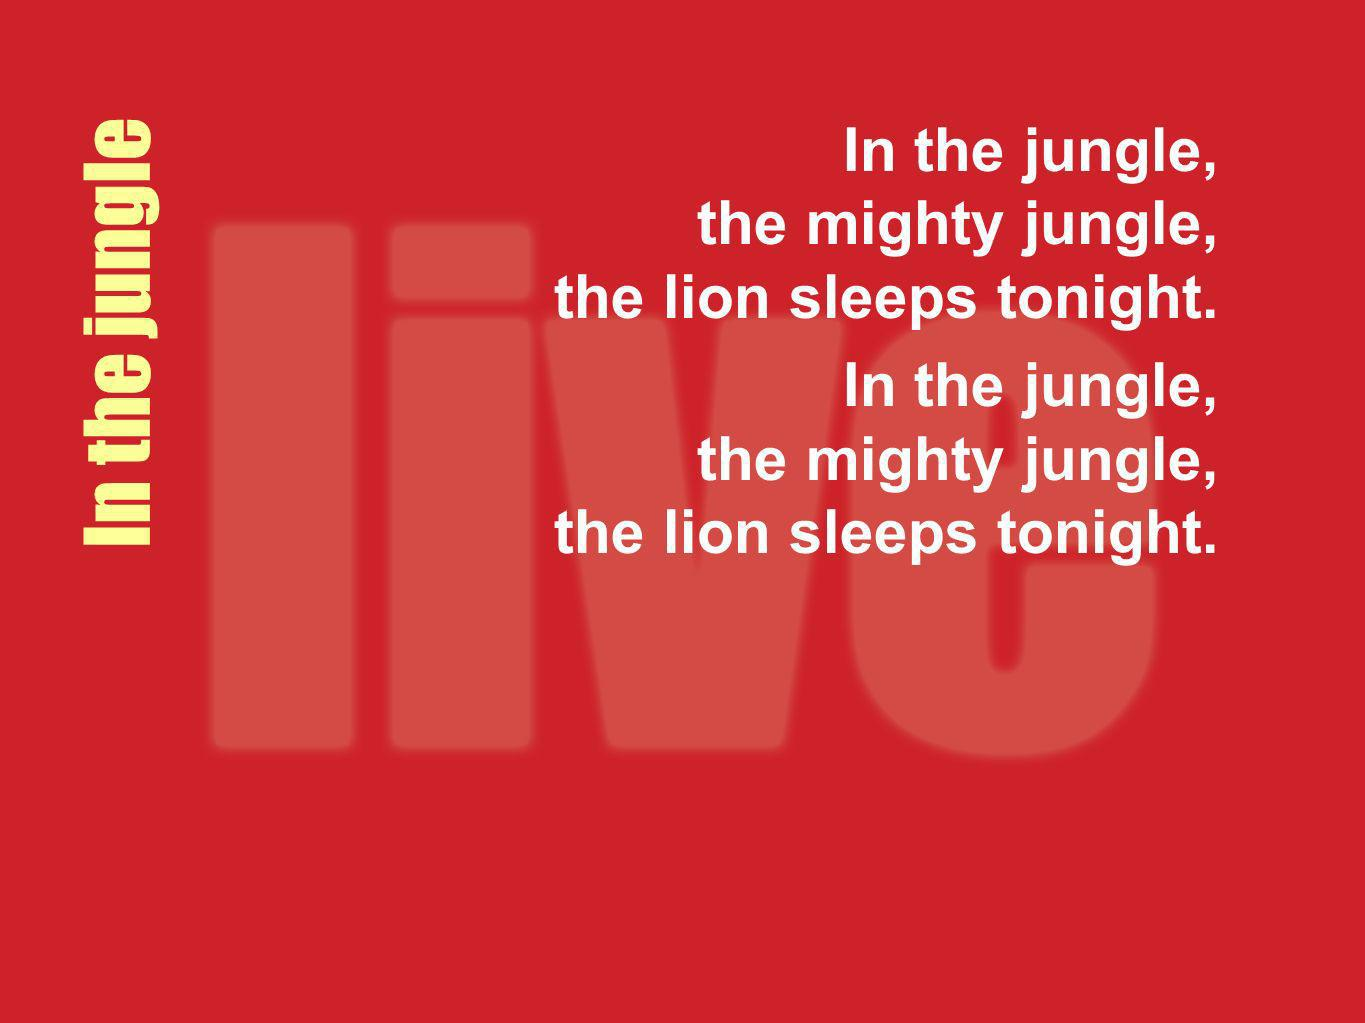 In the jungle, the mighty jungle, the lion sleeps tonight.